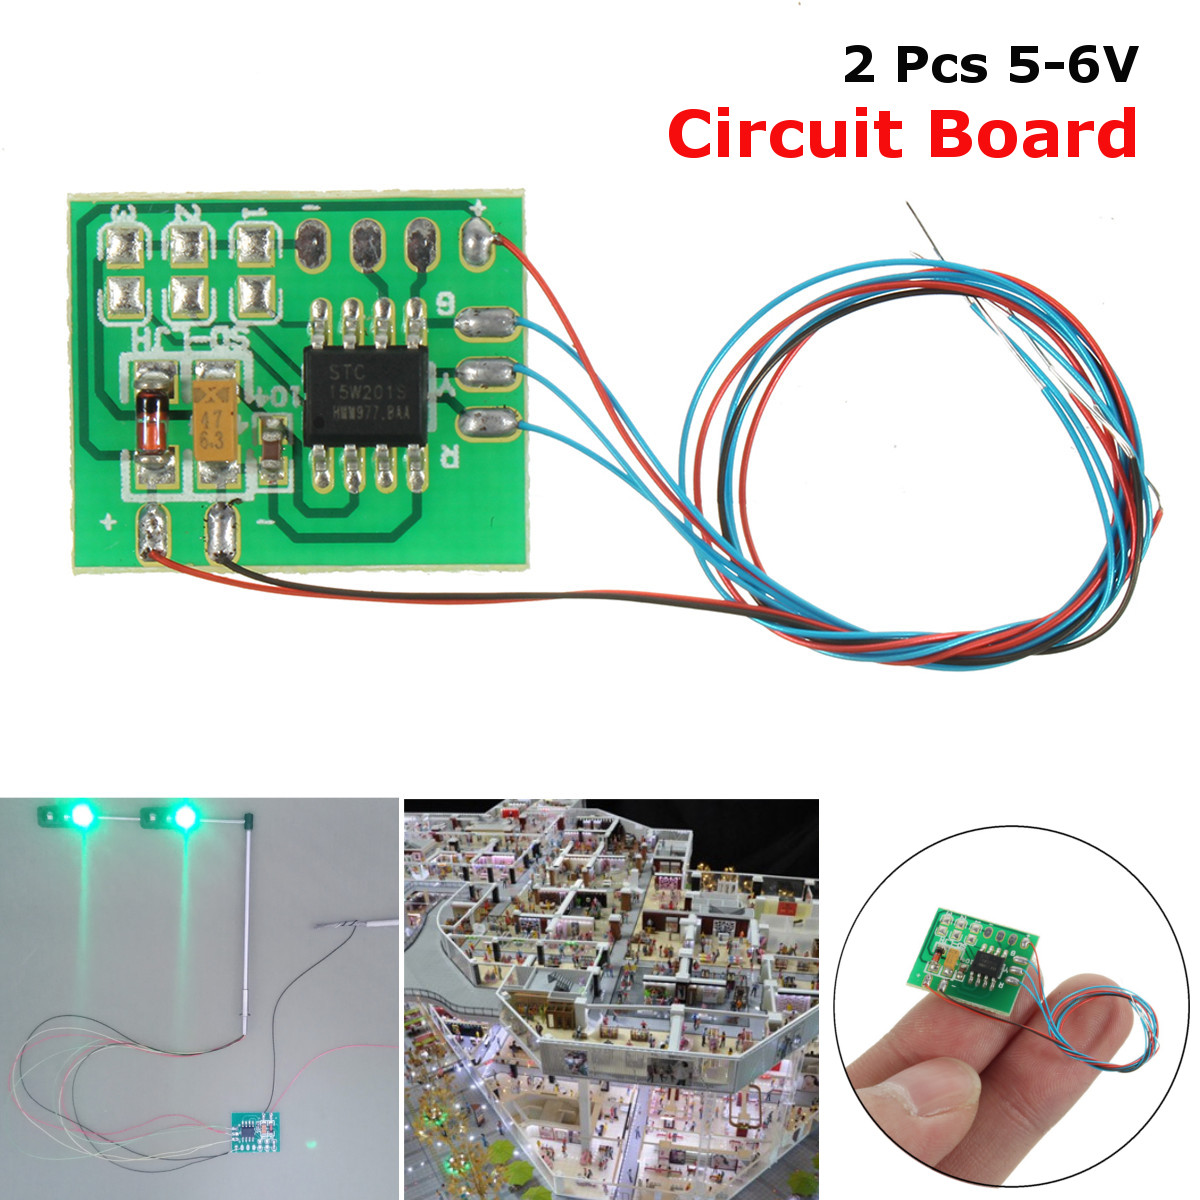 2Pcs DIY Scale Construction Sand Table Model Circuit Board Traffic Light Signal Model HO Scale Train Railway Miniatures